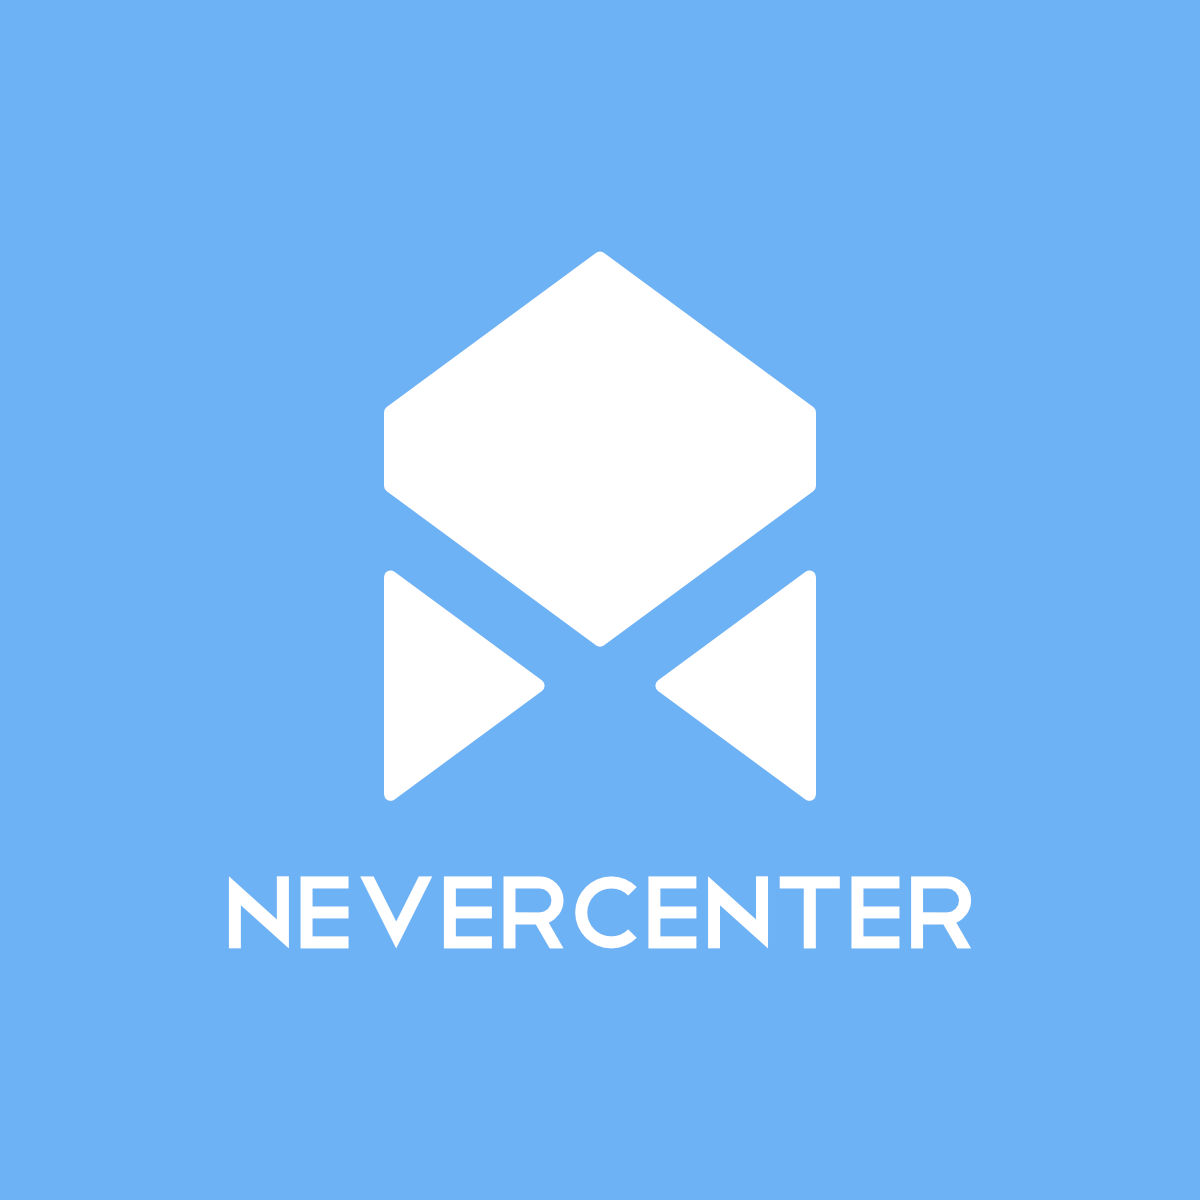 Nevercenter Pixelmash Free full Version Download